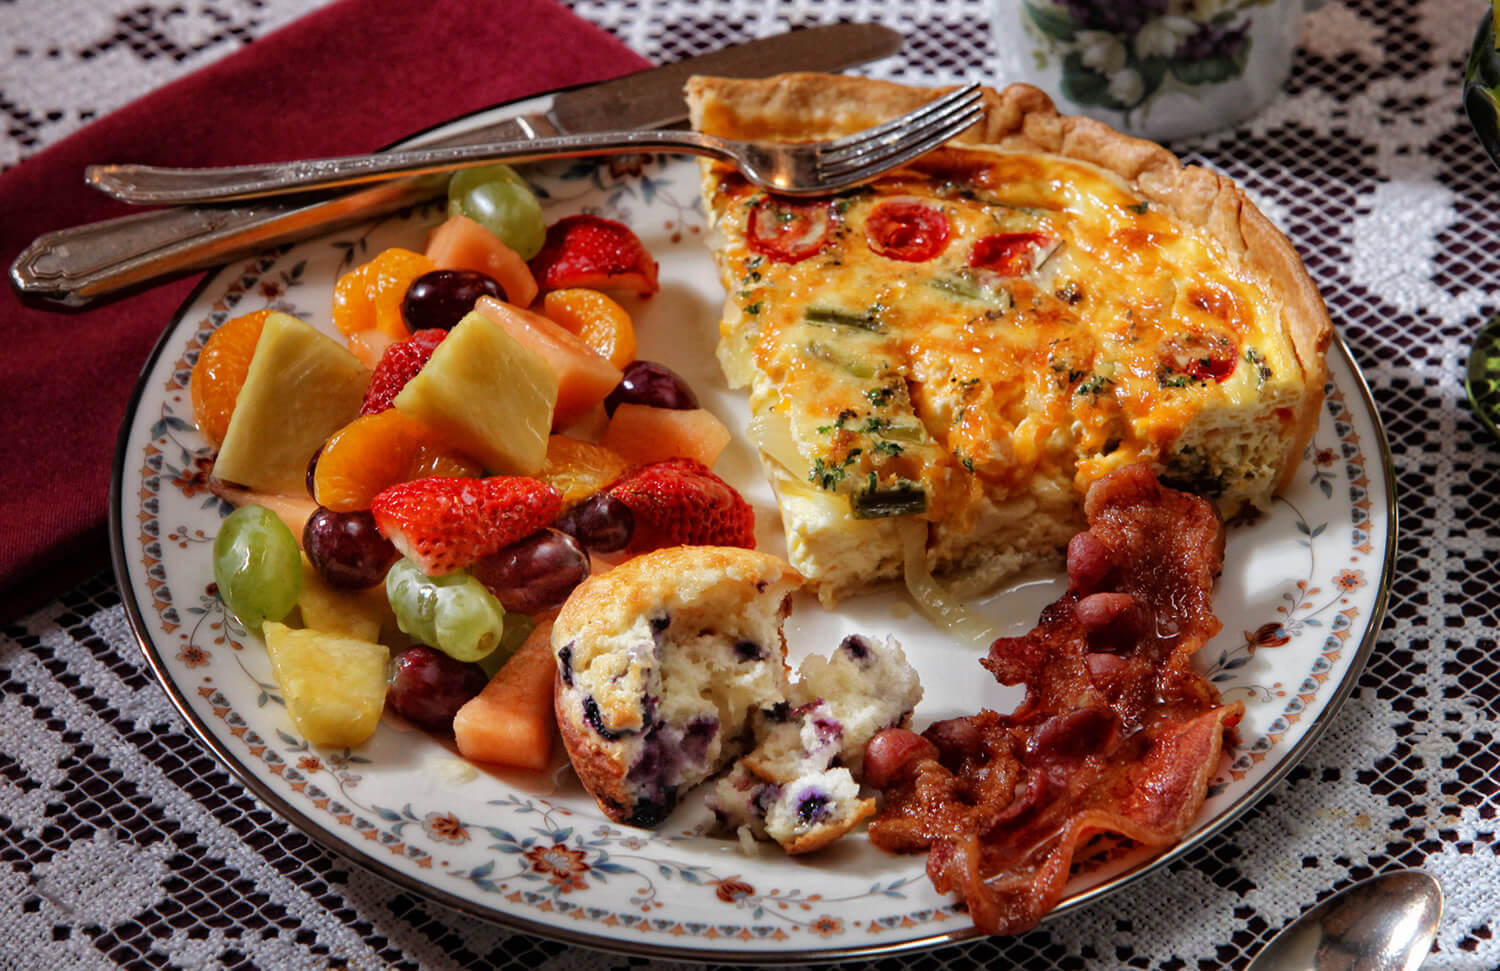 wedge of ham and cheese quiche, blueberry muffin, bacon and red strawberries, orange/ green melon, red/ green grapes